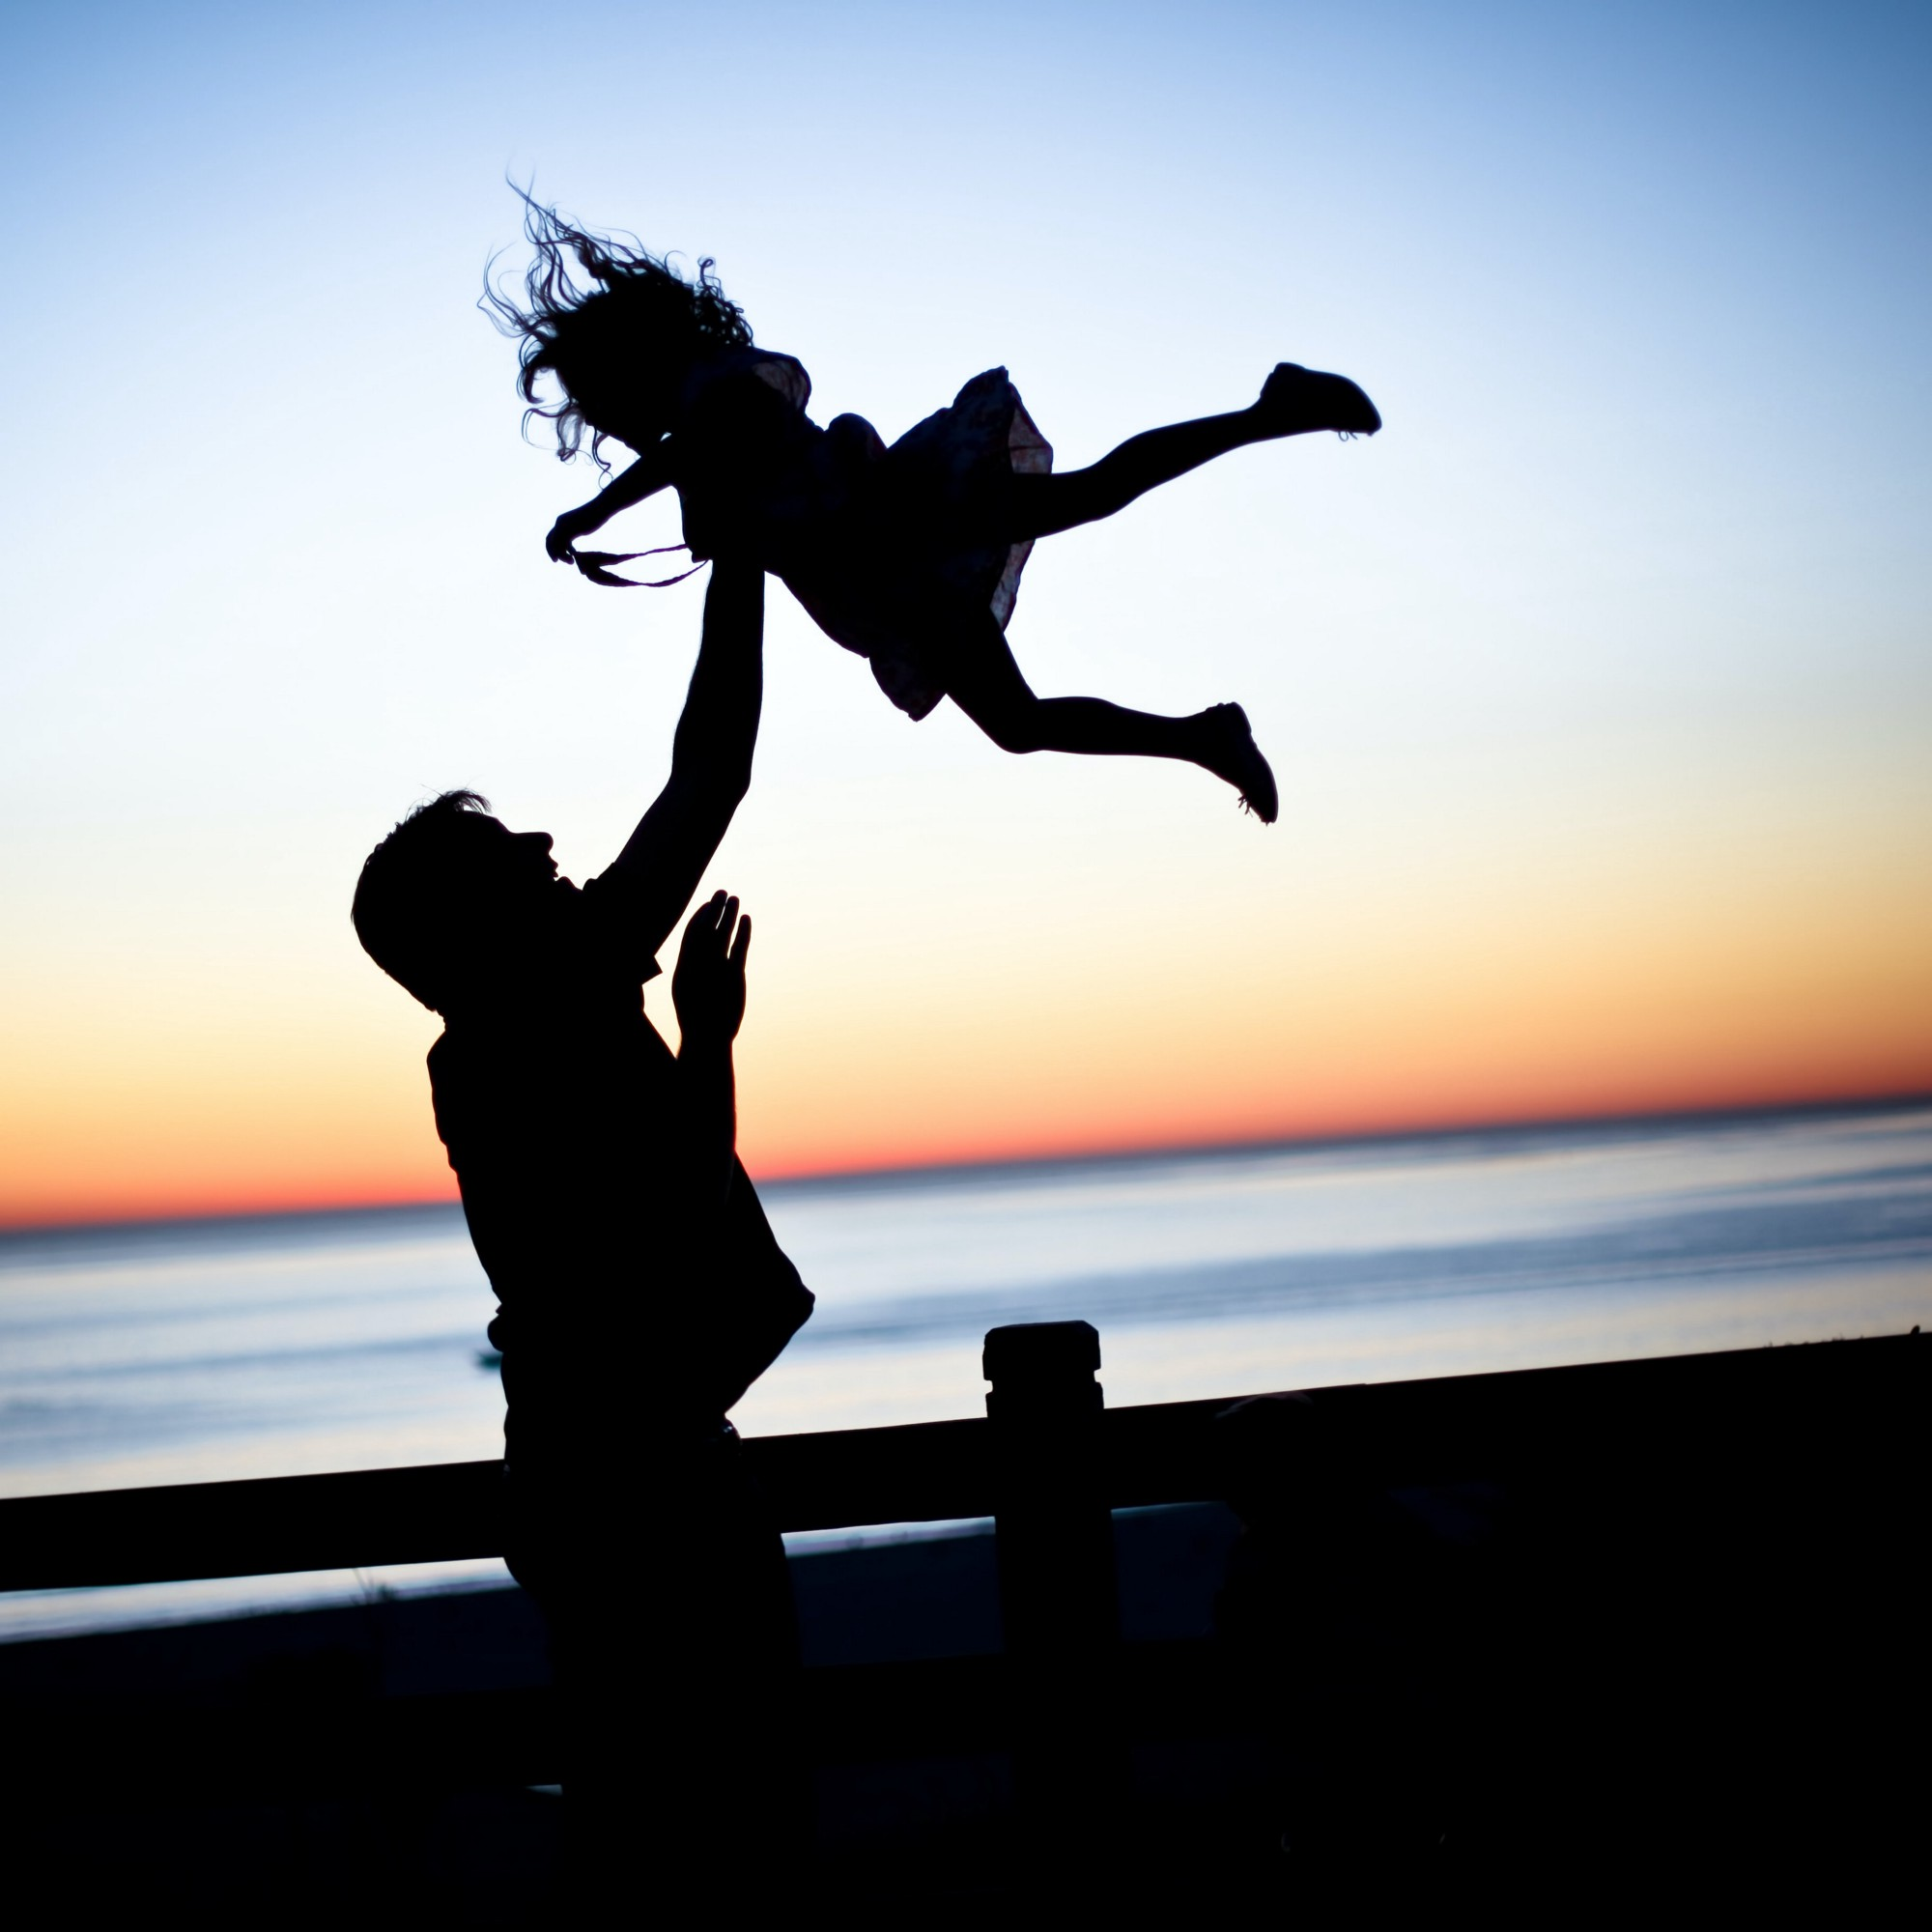 Silhouette of man or father tossing little girl in the air for fun with a sunset backdrop